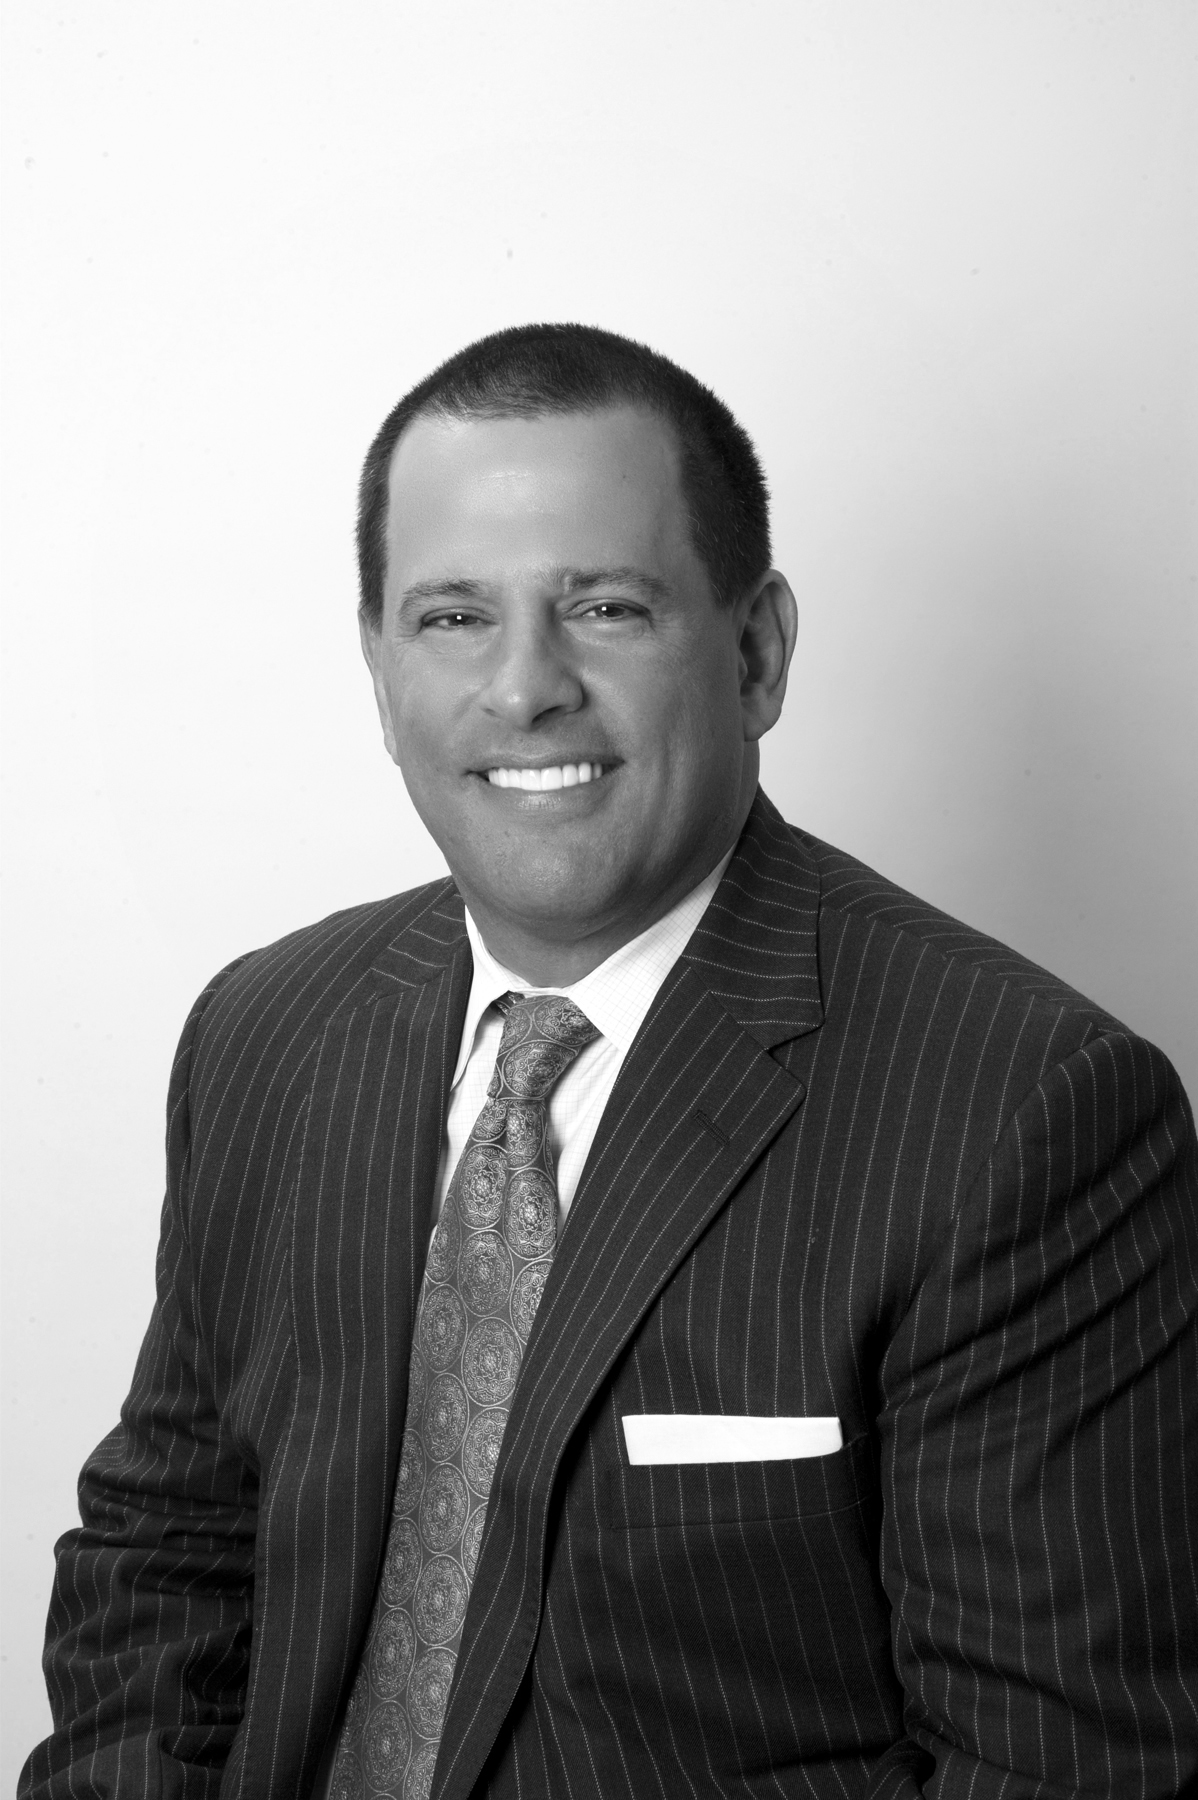 Christopher McMahon, financial advisor Irwin PA